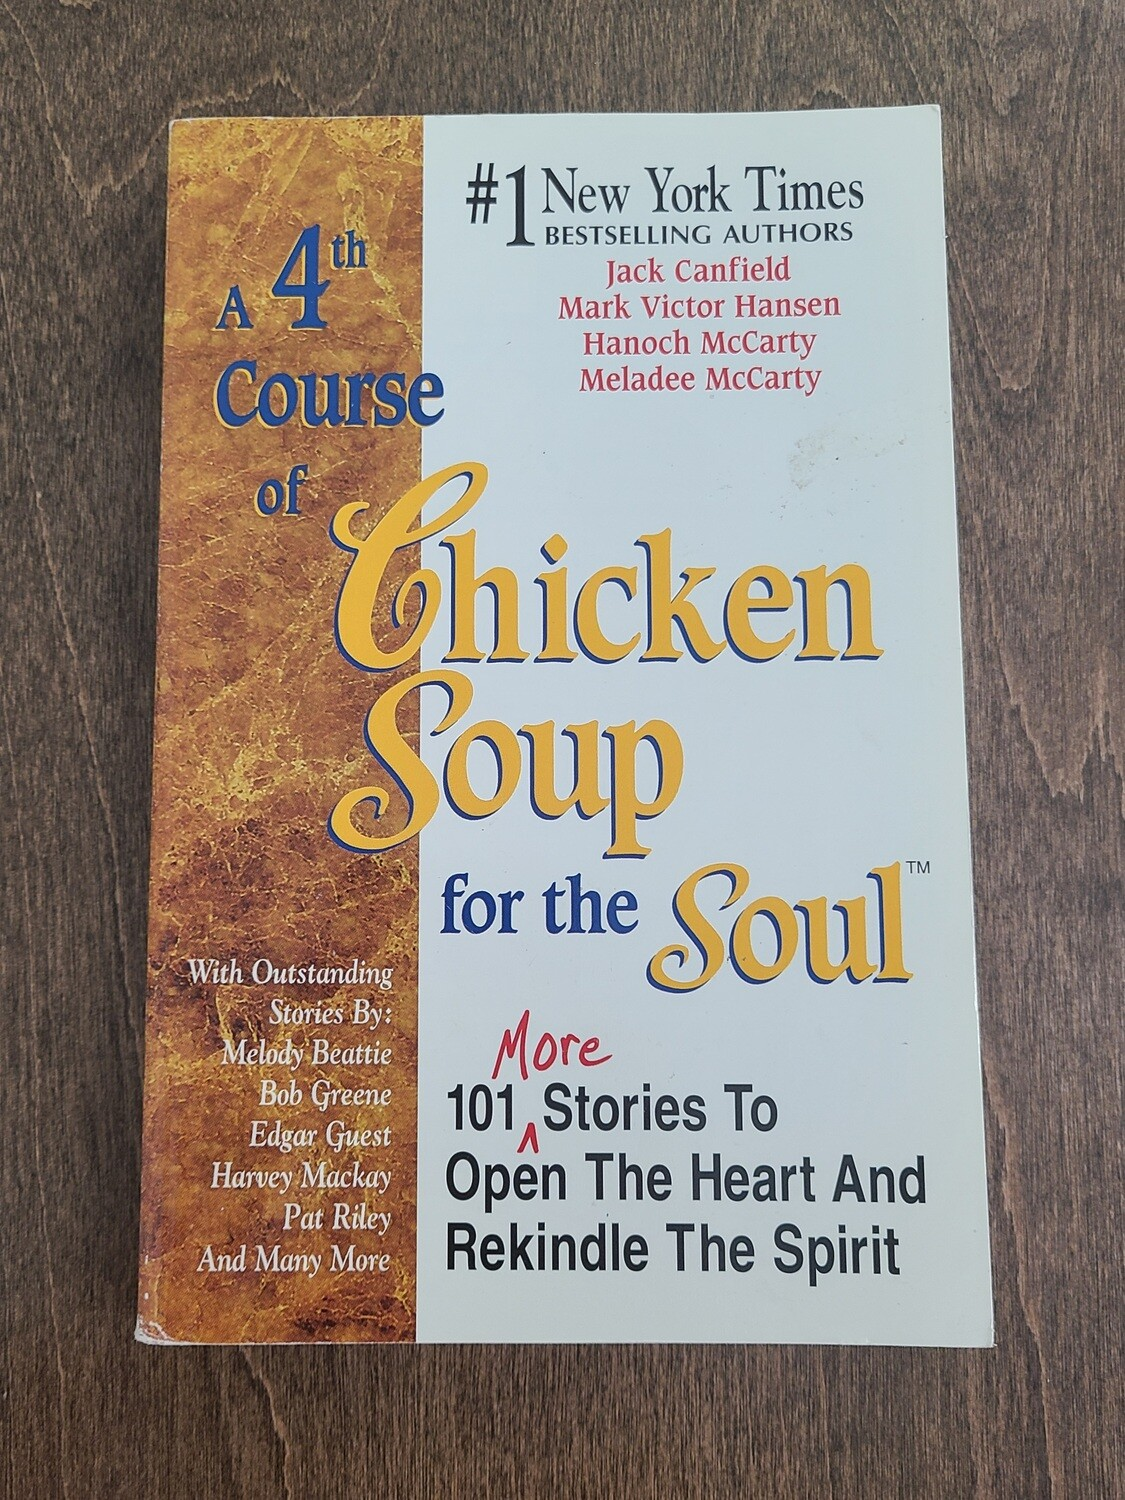 A 4th Course of Chicken Soup for the Soul by Jack Canfield, Mark Victor Hansen, Hanoch and Meladee McCarty